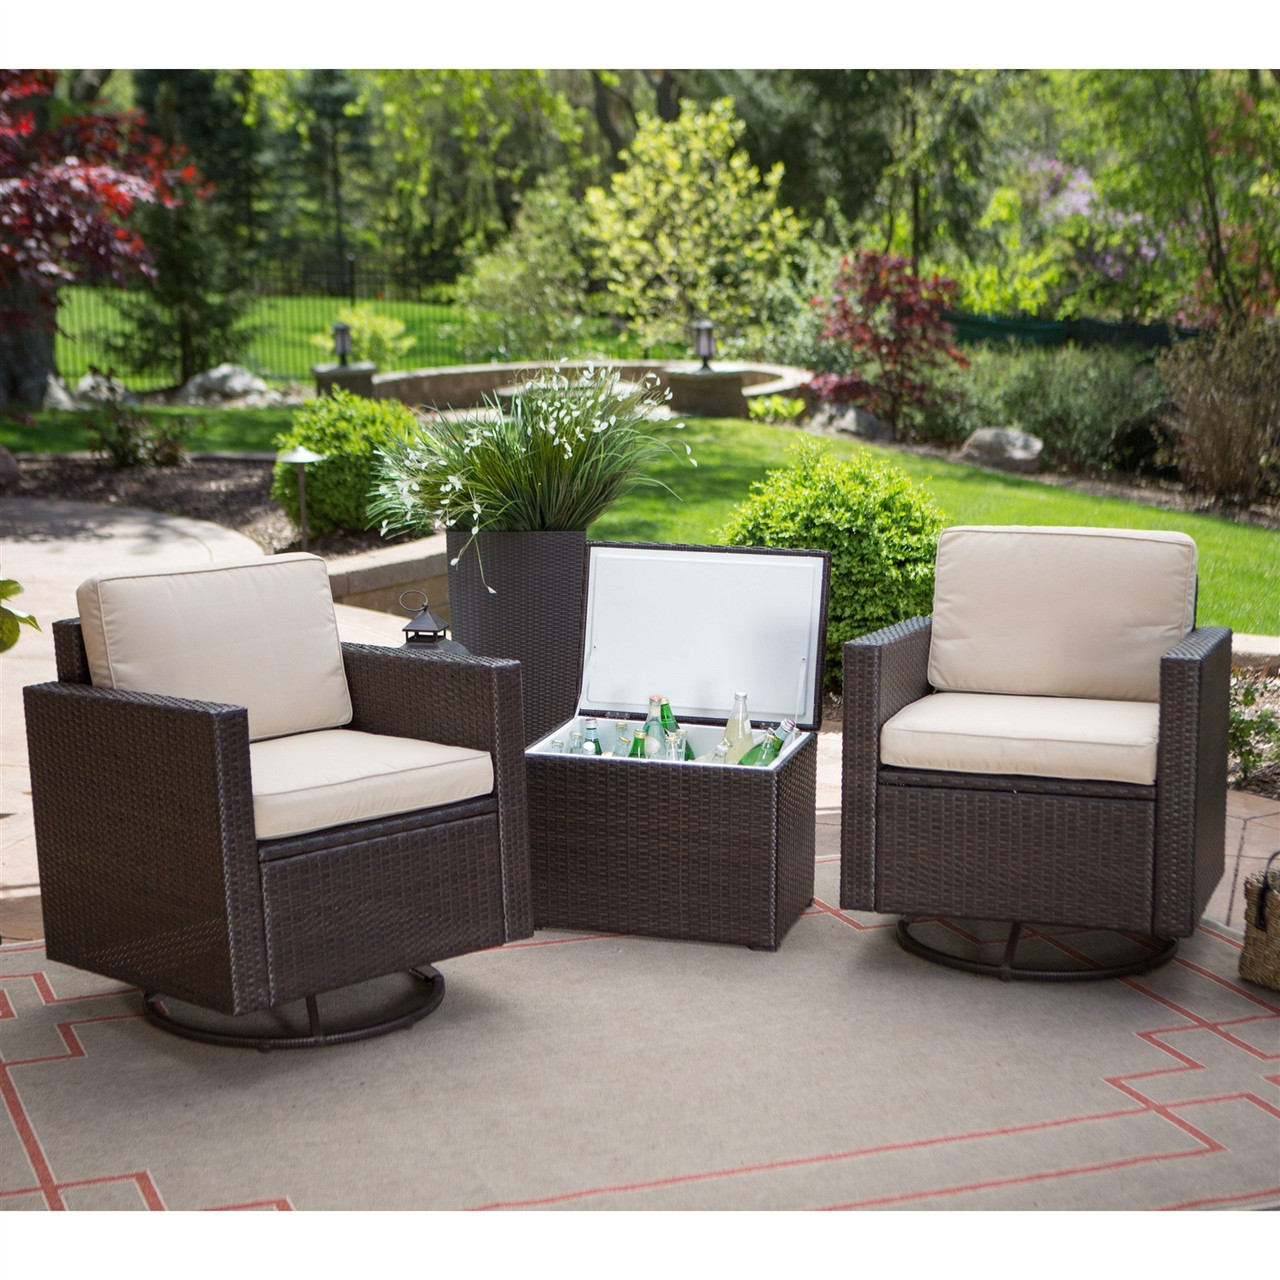 2 chairs and table patio set best computer chair ever wicker resin 3 pc furniture cooler